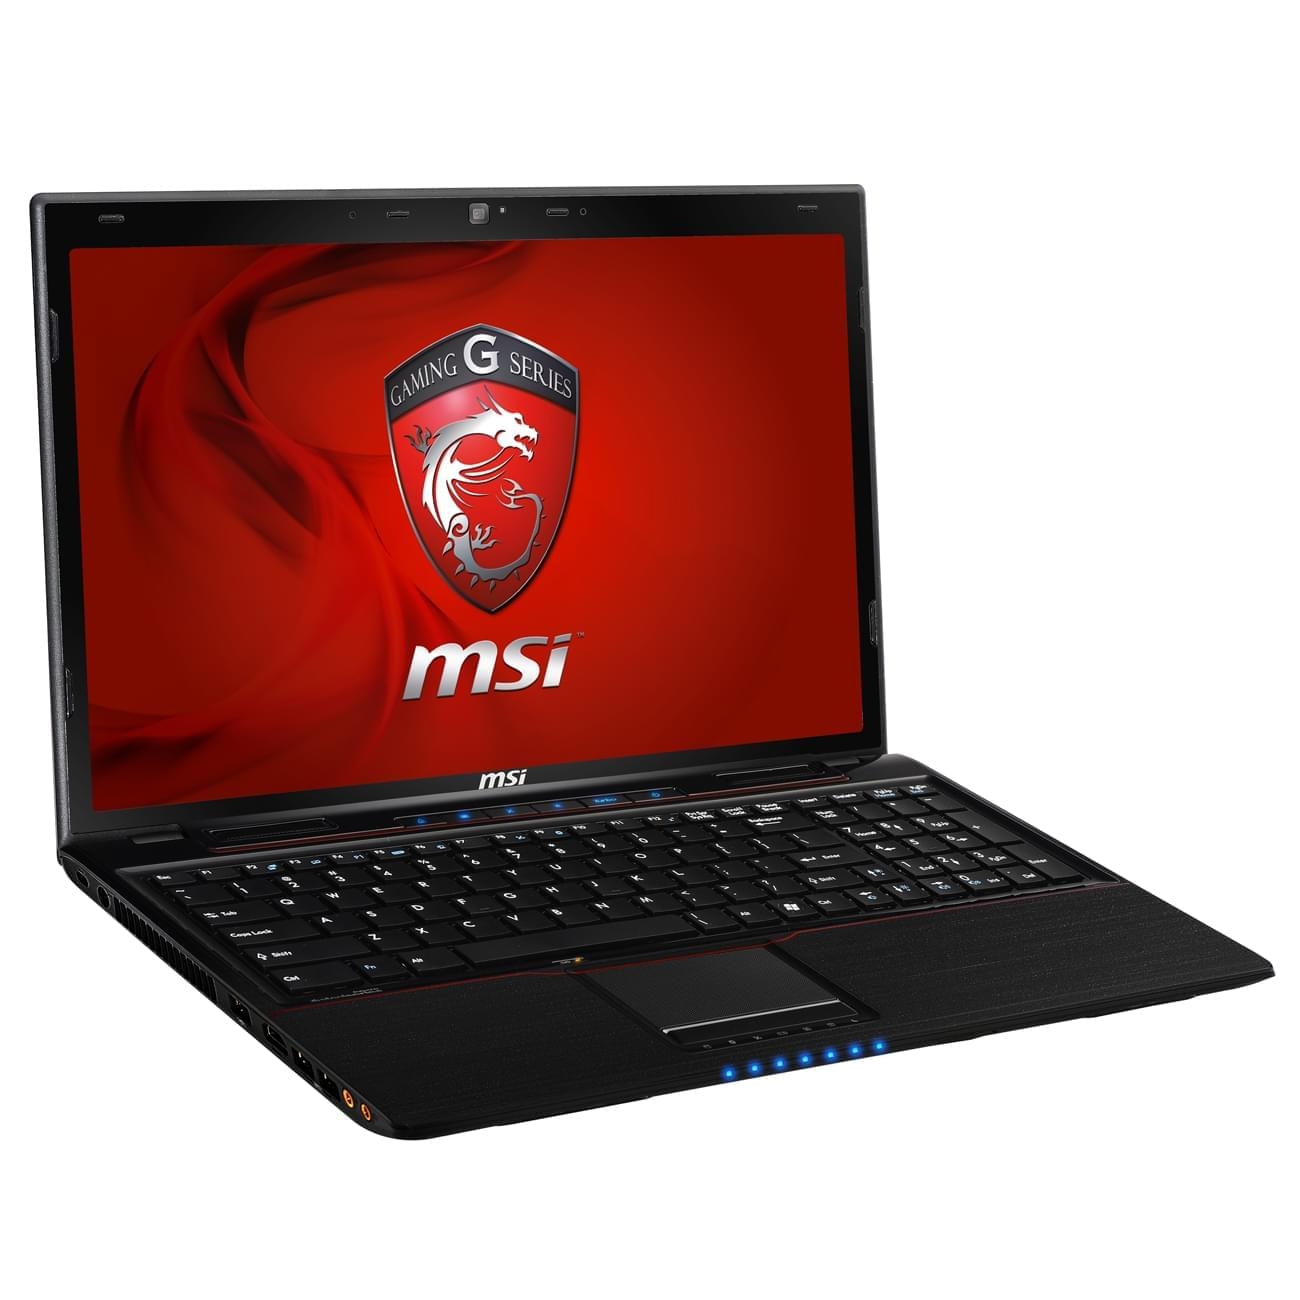 MSI 9S7-16GA11-623 - PC portable MSI - Cybertek.fr - 0